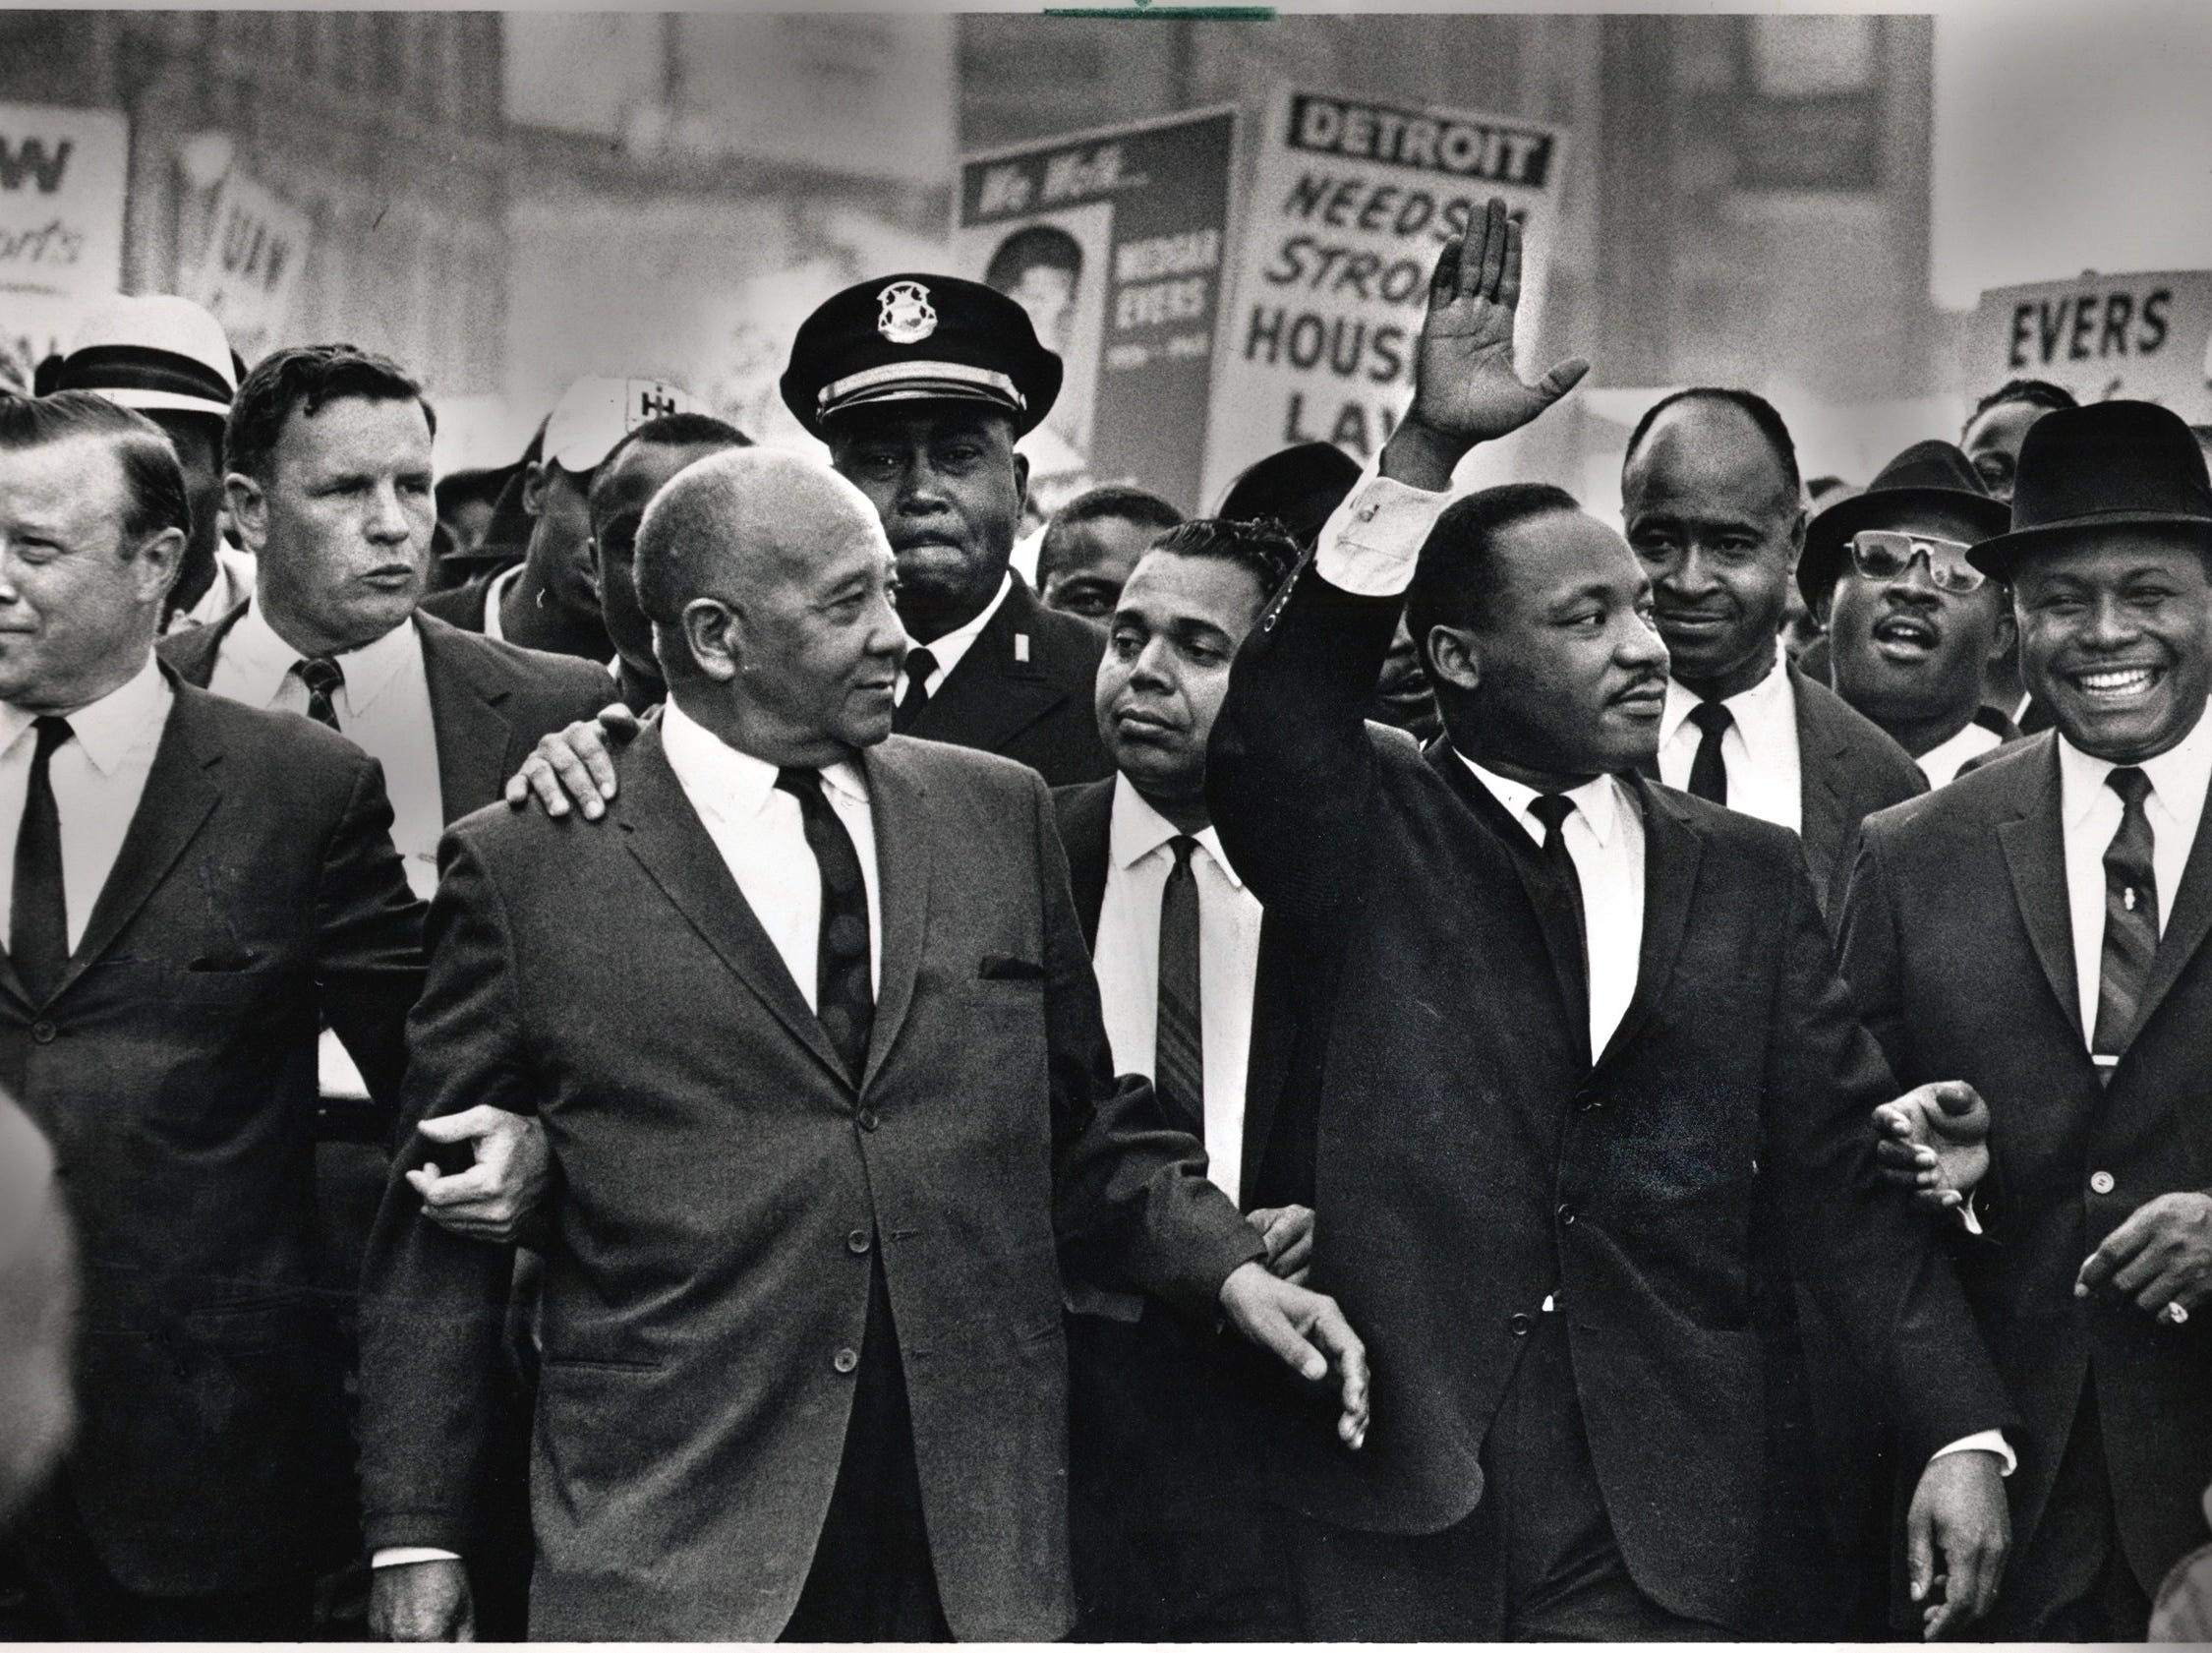 "The Rev. Martin Luther King Jr. waves to onlookers as he leads the 125,000 strong ""Walk to Freedom"" on Woodward Avenue in Detroit  in 1963.  From left to right in the front row are: Walter Reuther, Benjamin McFall, Dr. King, and Rev. C.L. Franklin."